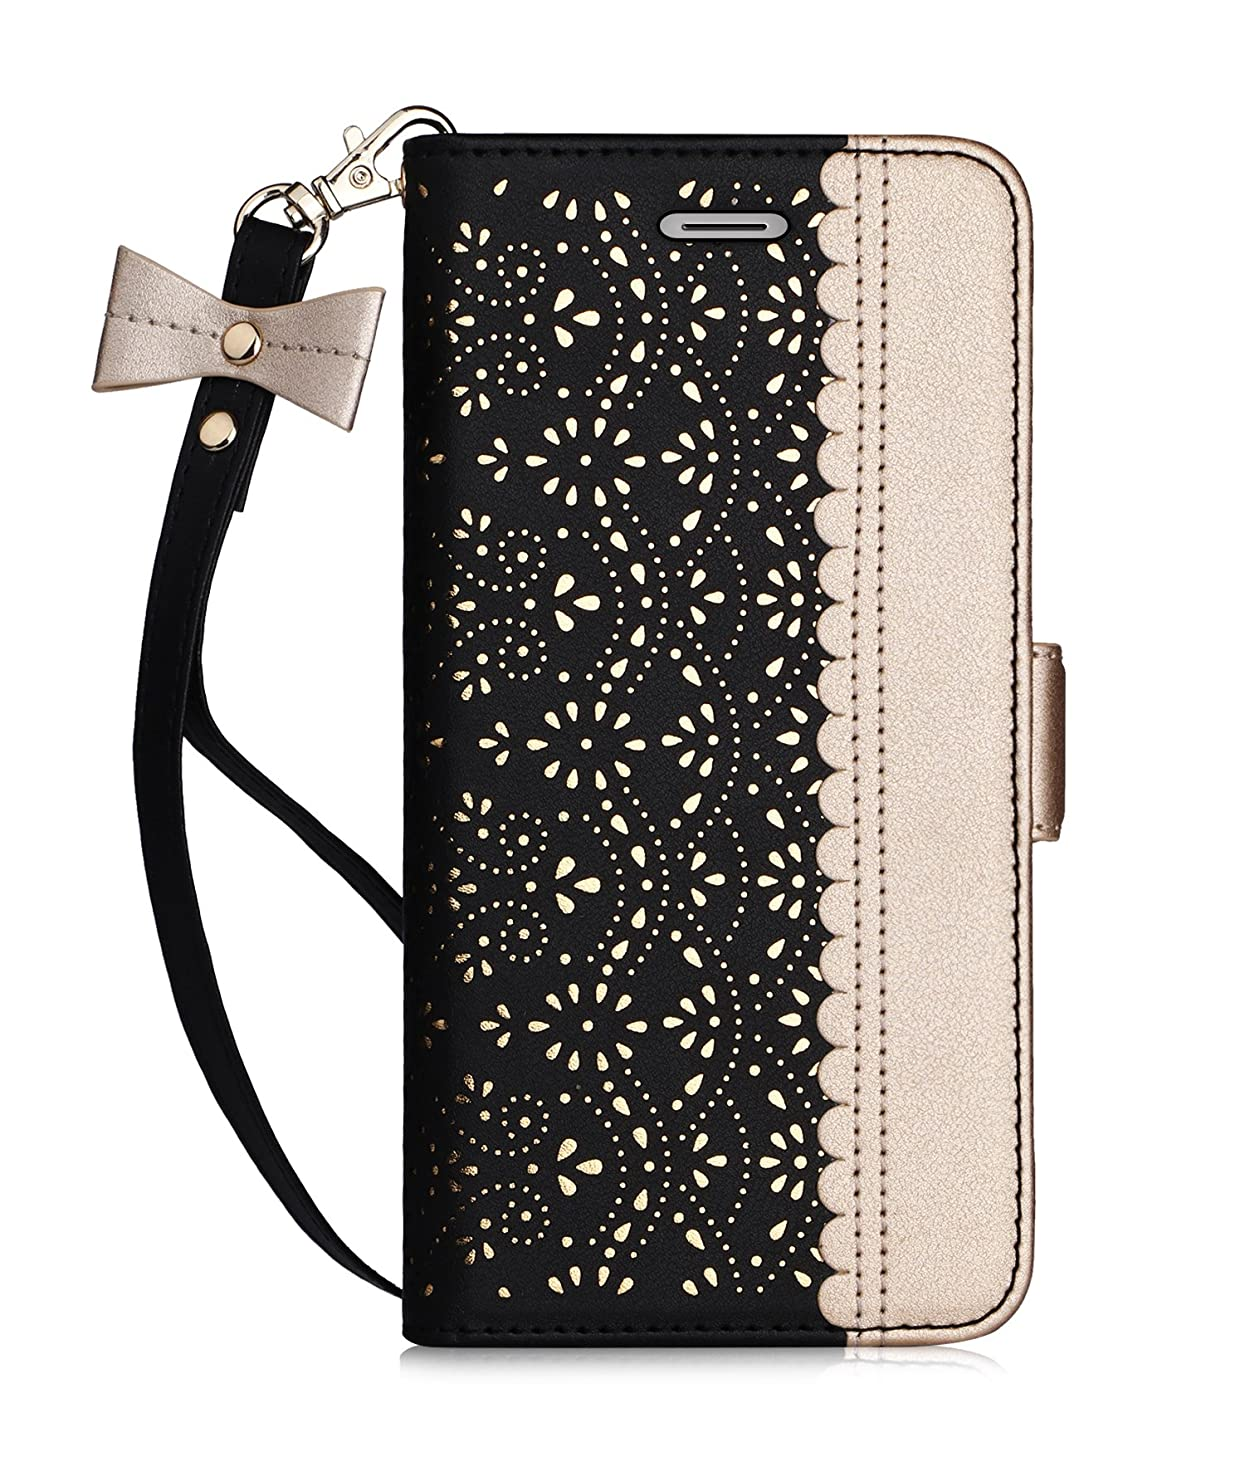 WWW iPhone 6S Plus Case, iPhone 6 Plus Case, [Luxurious Romantic Carved Flower] Leather Wallet Case with [Inside Makeup Mirror] and [Kickstand Feature] for Apple iPhone 6/6S Plus Black